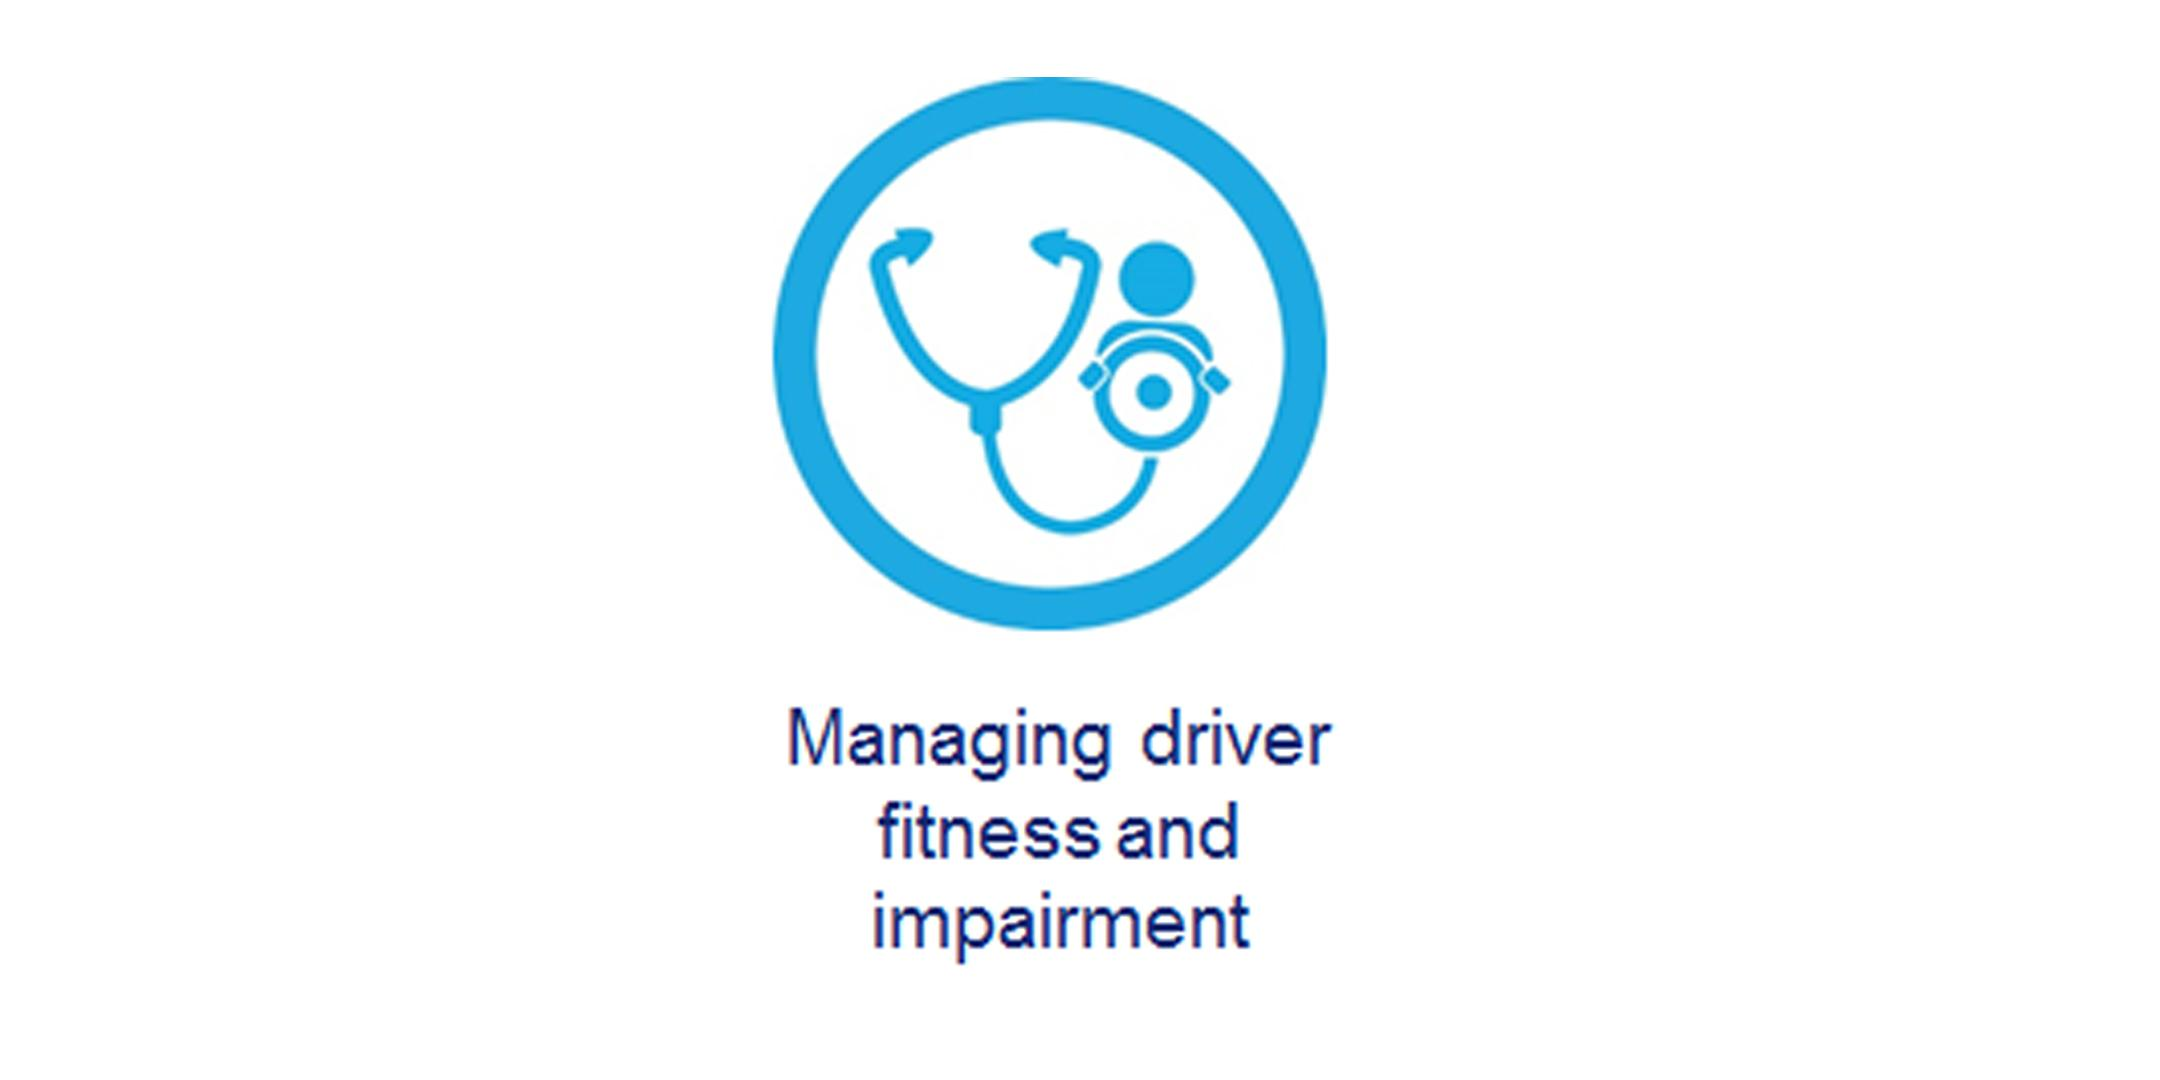 3 - Managing driver fitness and health - Wemb